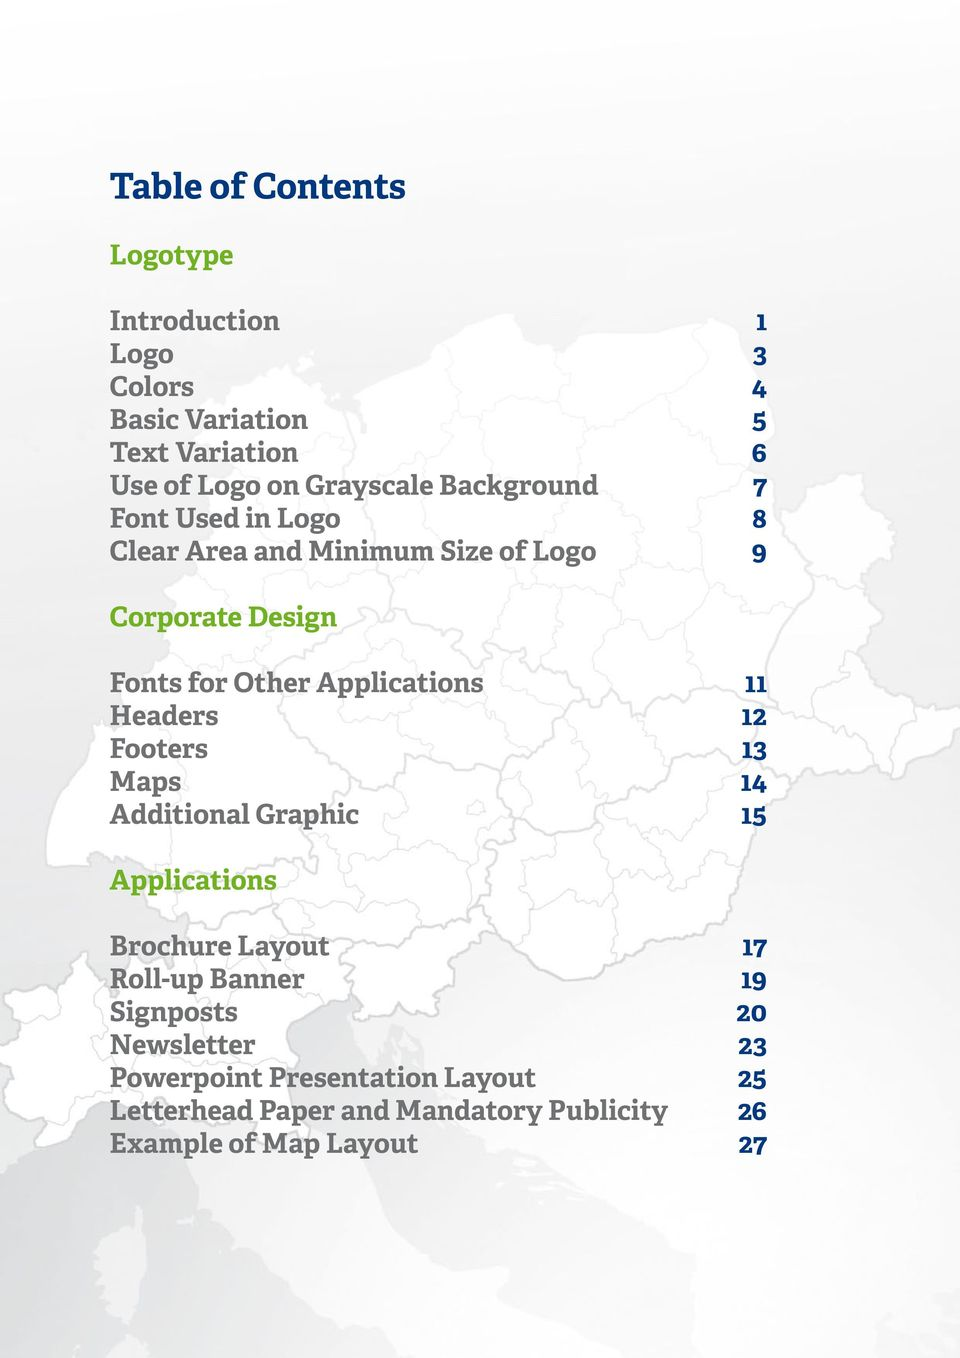 11 Headers 12 Footers 13 Maps 14 Additional Graphic 15 Applications Brochure Layout 17 Roll-up Banner 19 Signposts 20